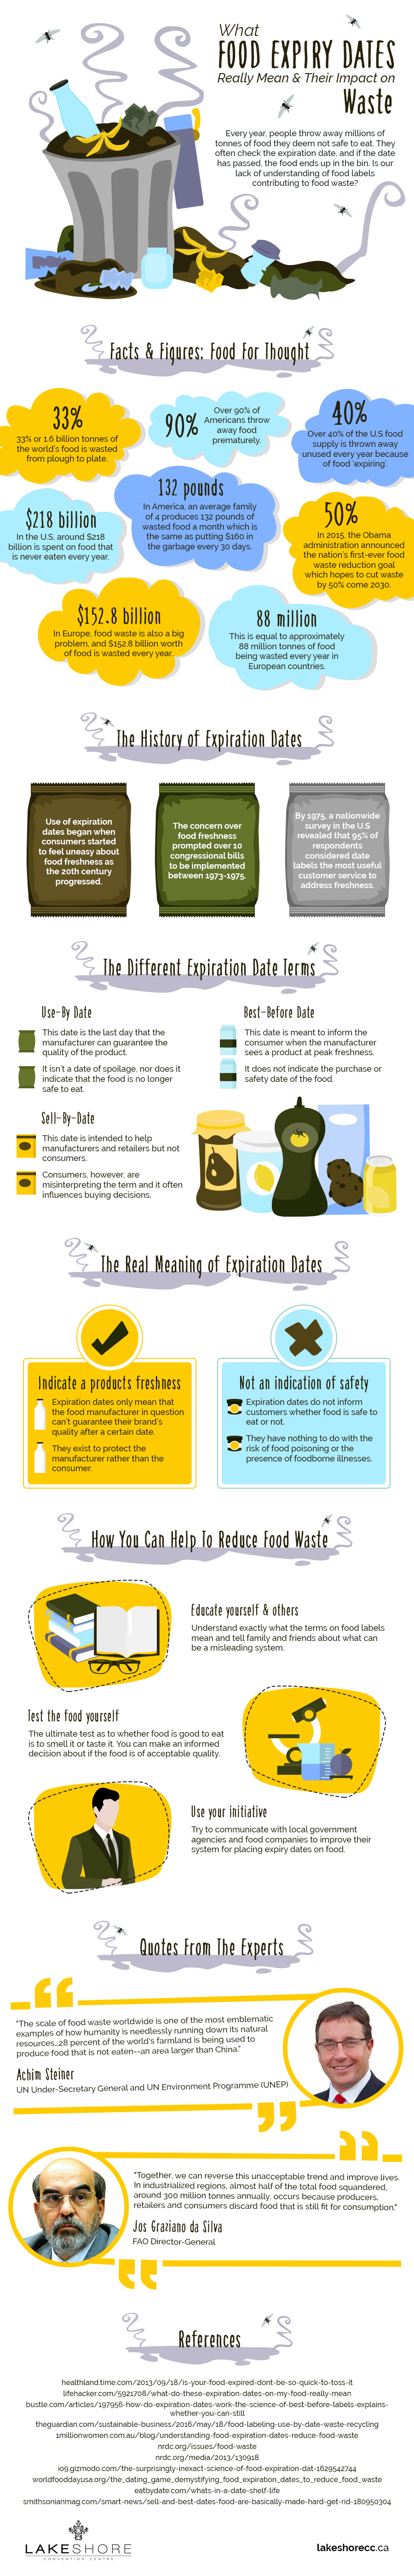 What Food Expiry Dates Really Mean? [Infographic] | ecogreenlove